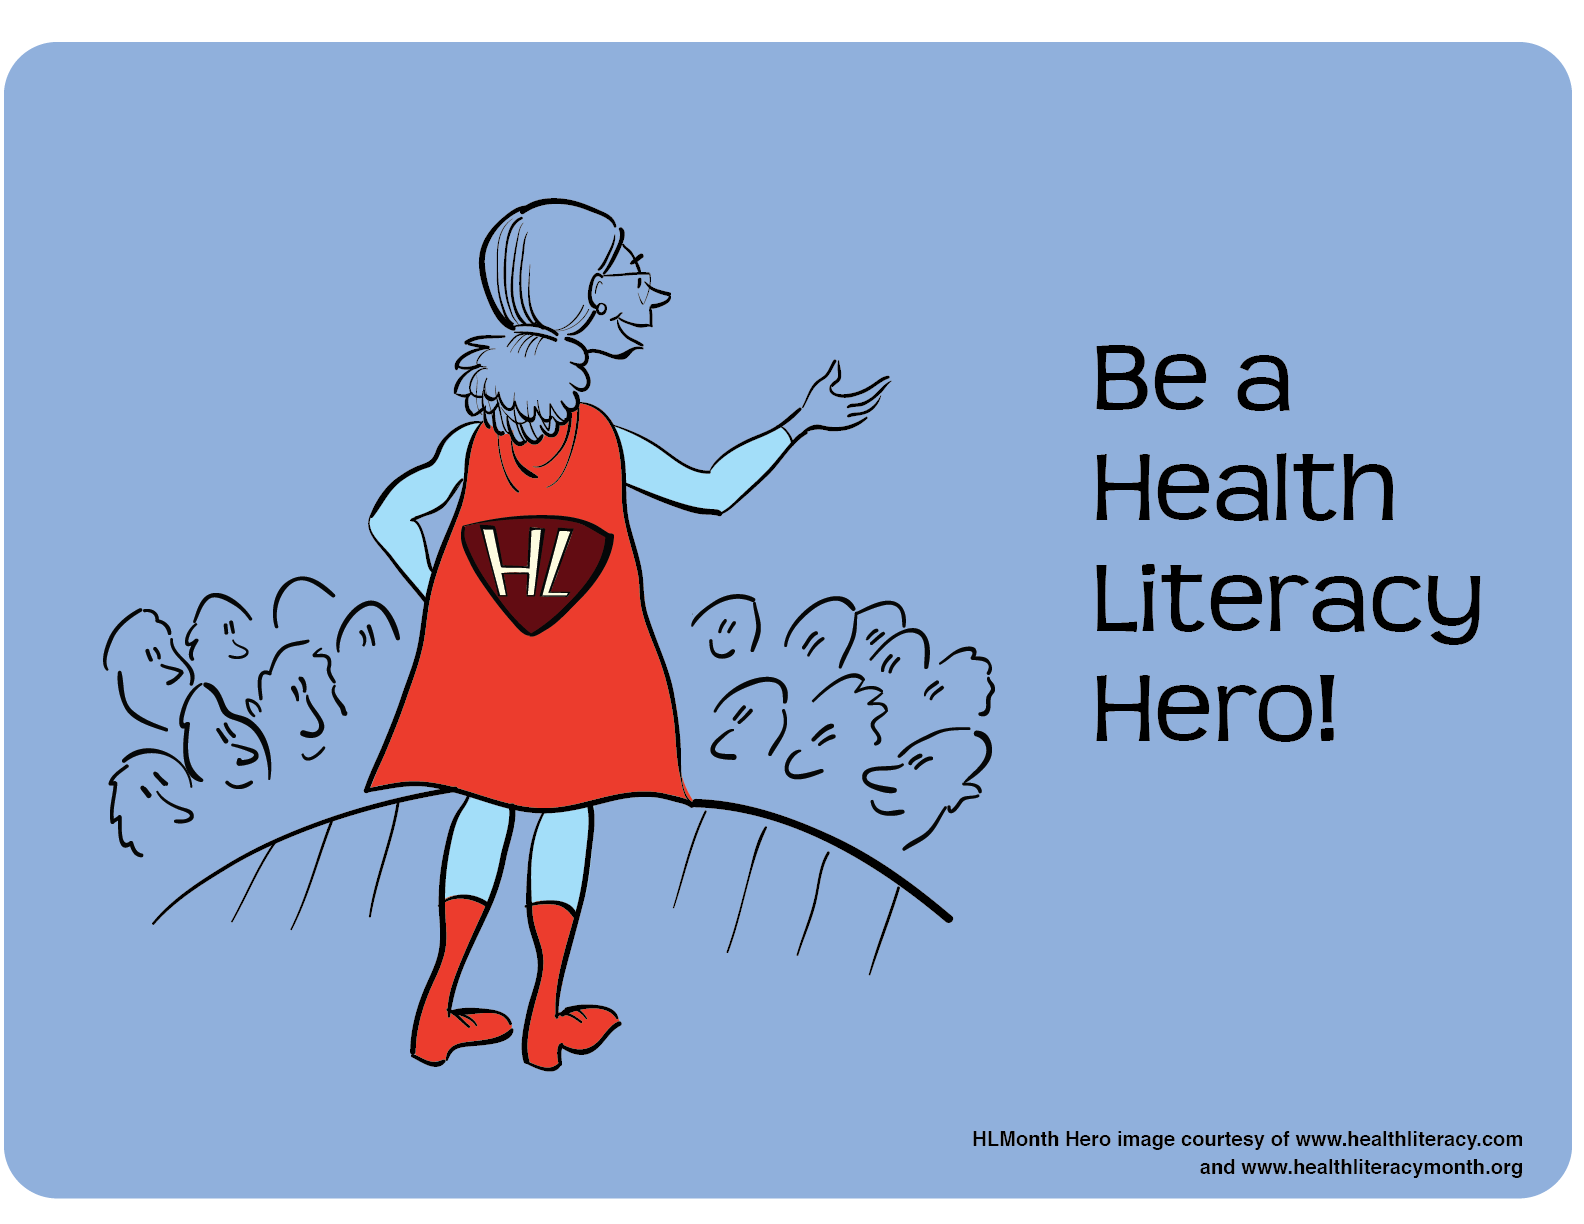 Health Literacy Month Imagery